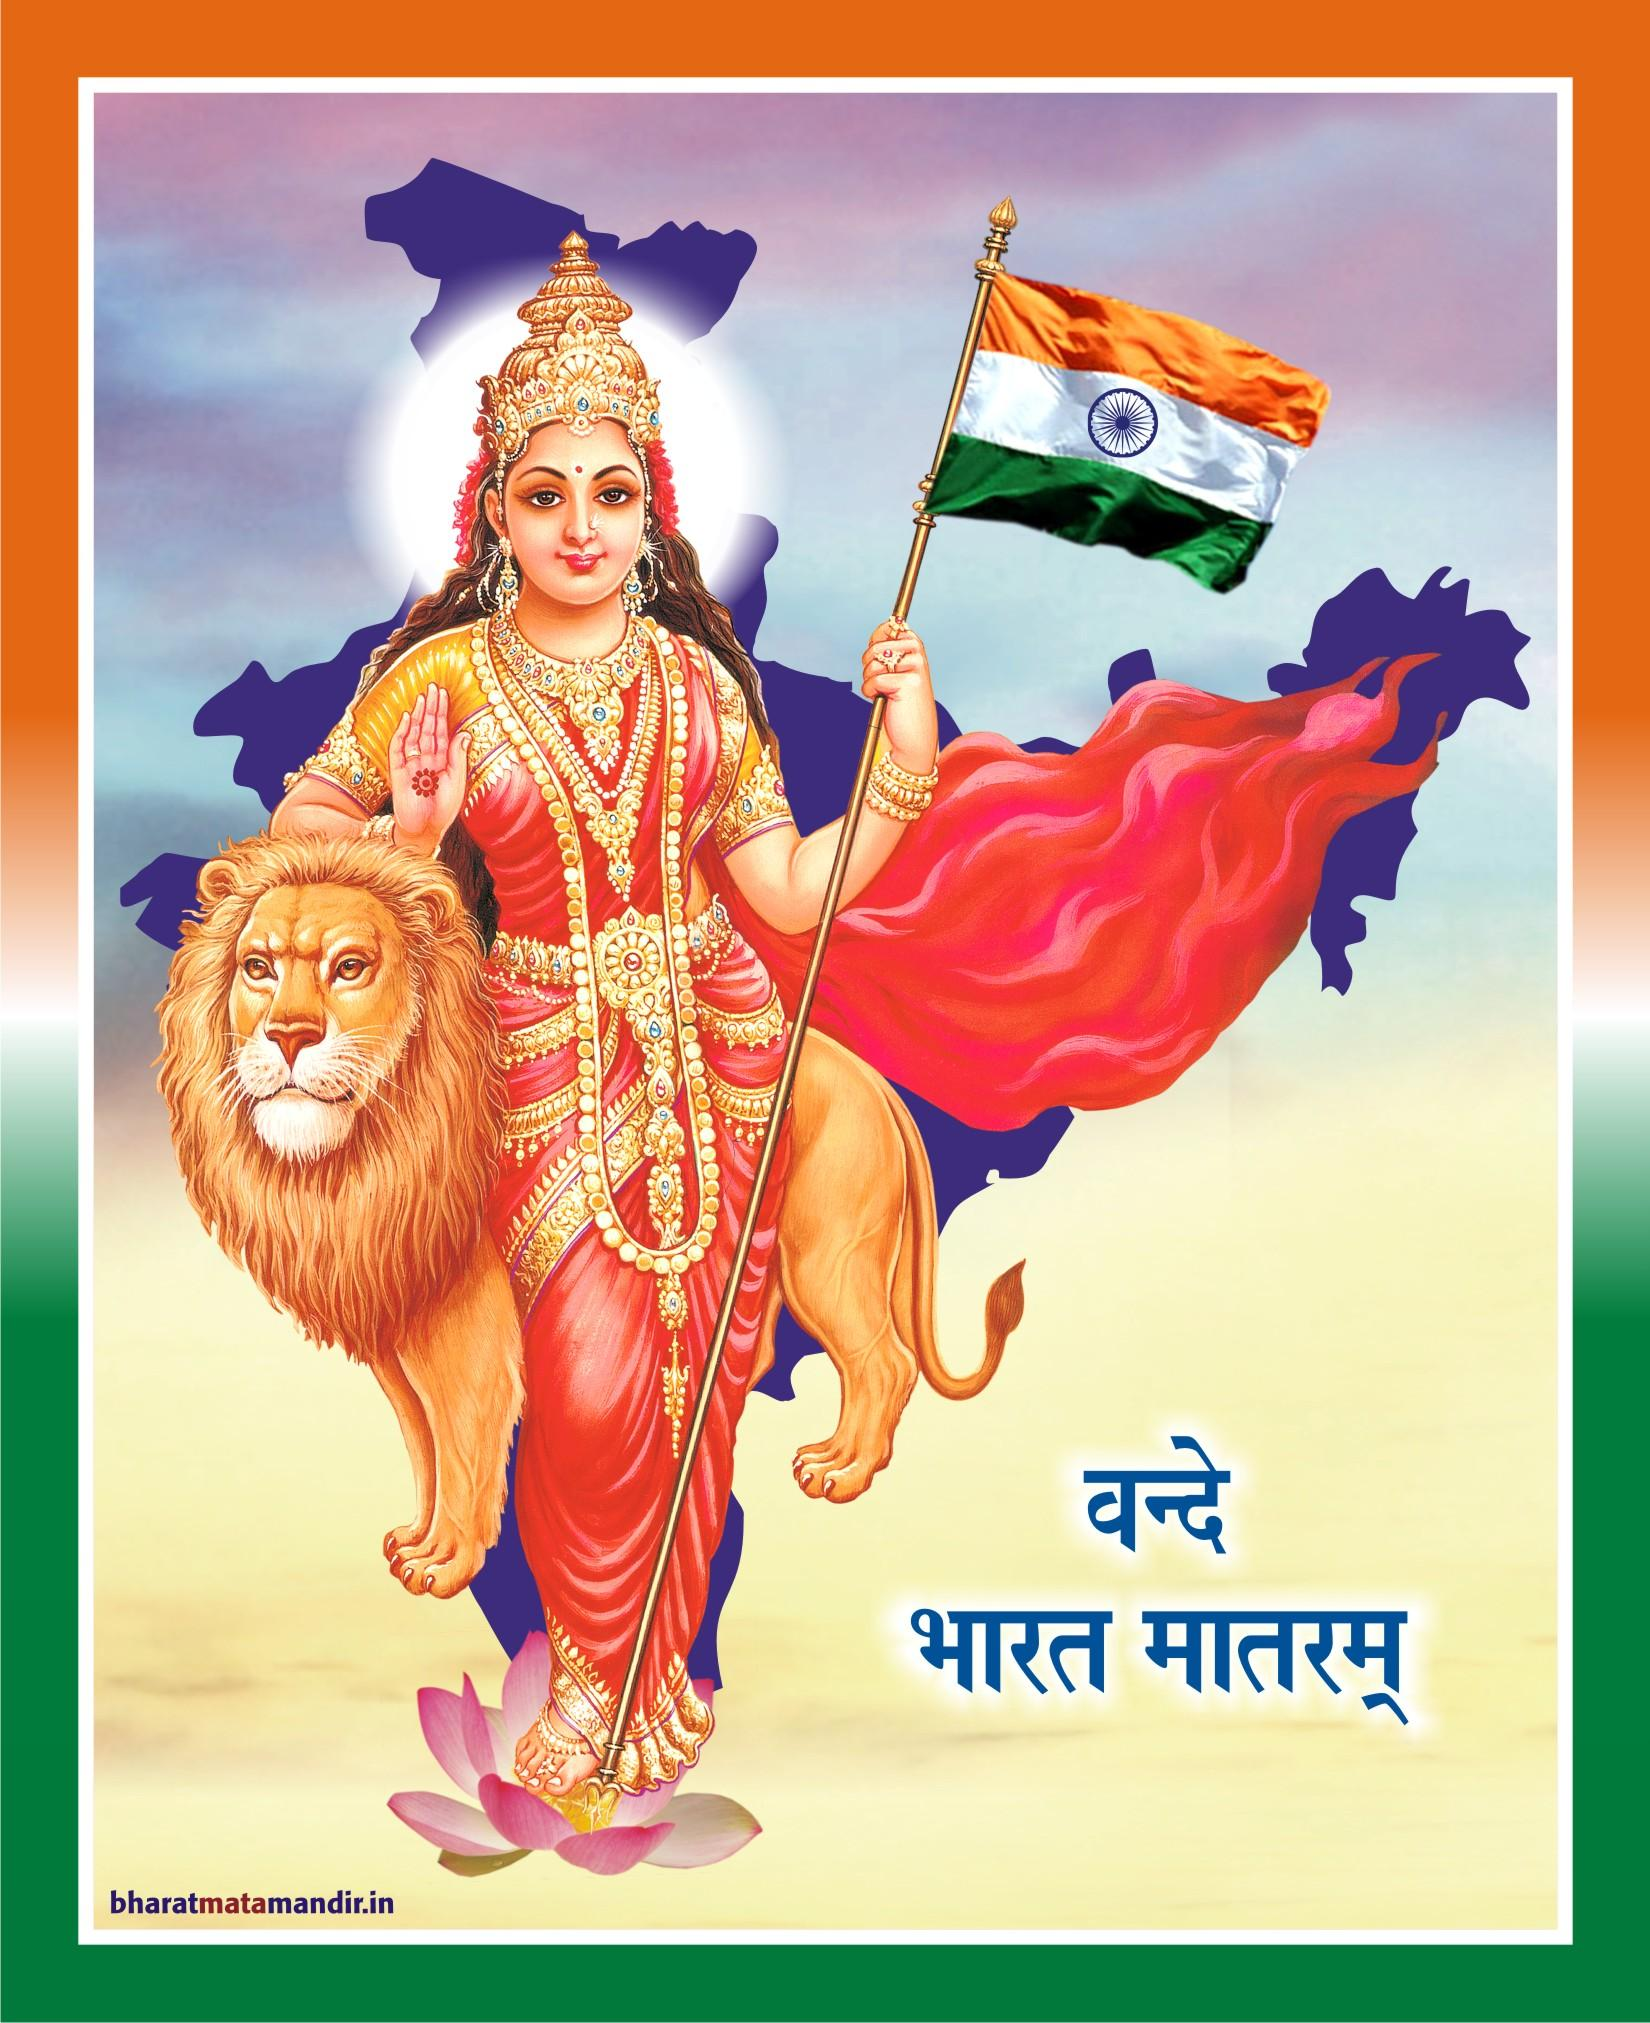 Bharat Mata Ki Jai Wallpaper Group - Bharat Mata Photo Hd Download  (#1208193) - HD Wallpaper & Backgrounds Download